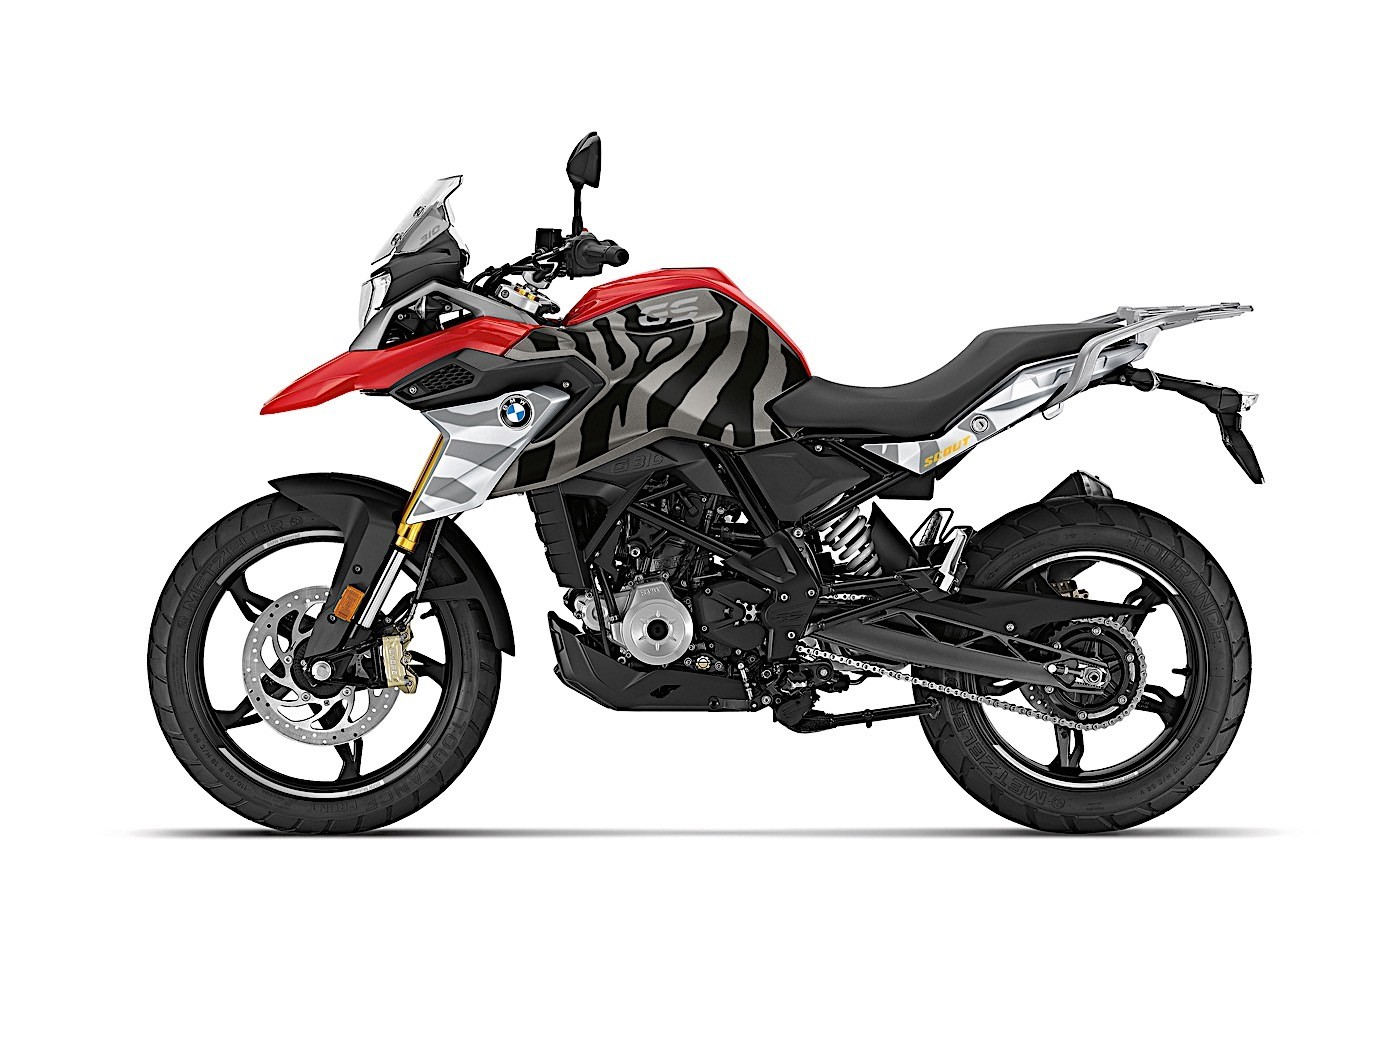 tattoo-your-bike-with-one-of-these-bmw-motorrad-stickers-4